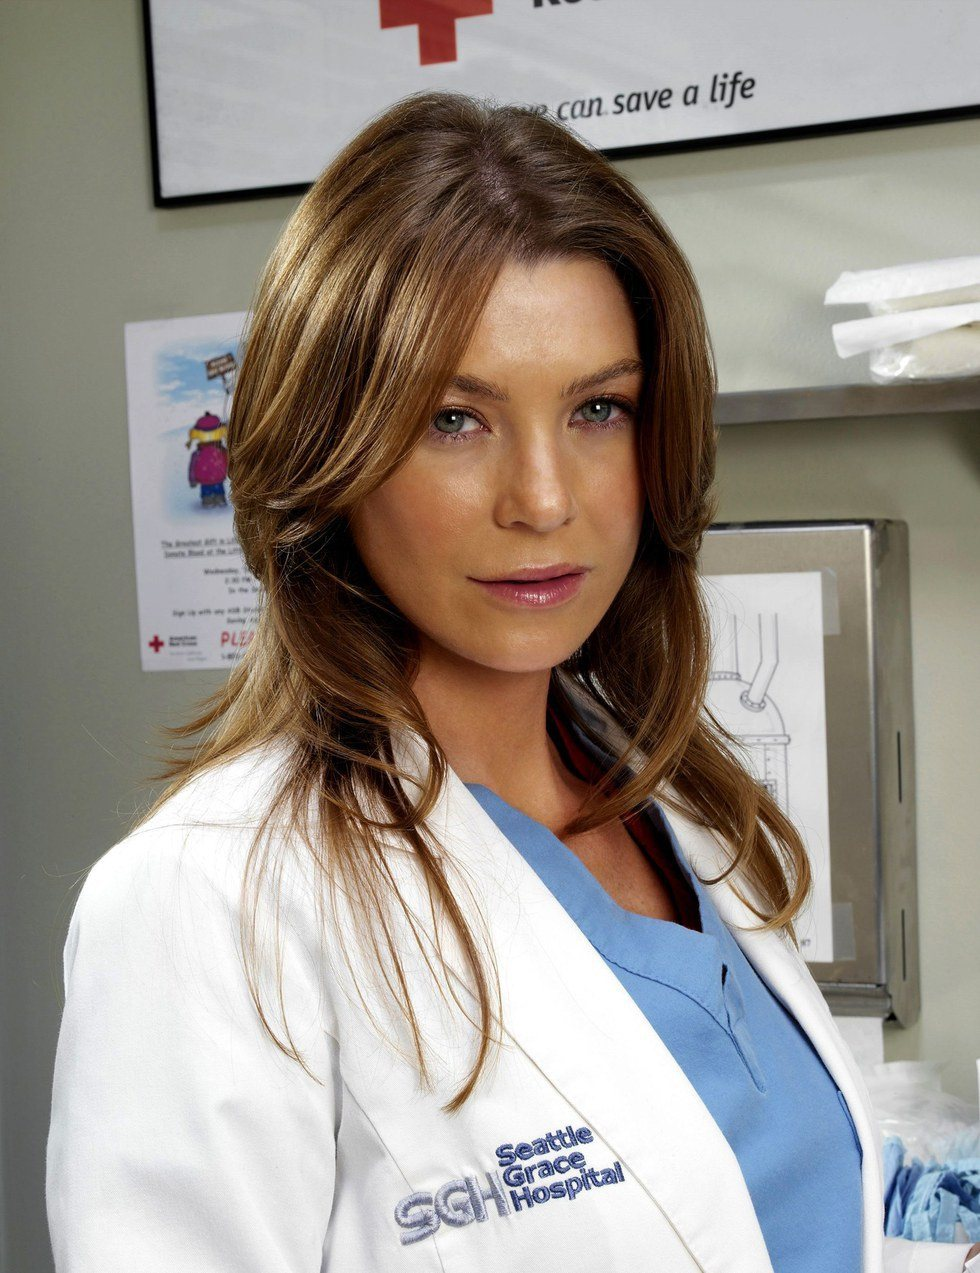 10 Things You Didn't Know About The Cast Of Grey's Anatomy